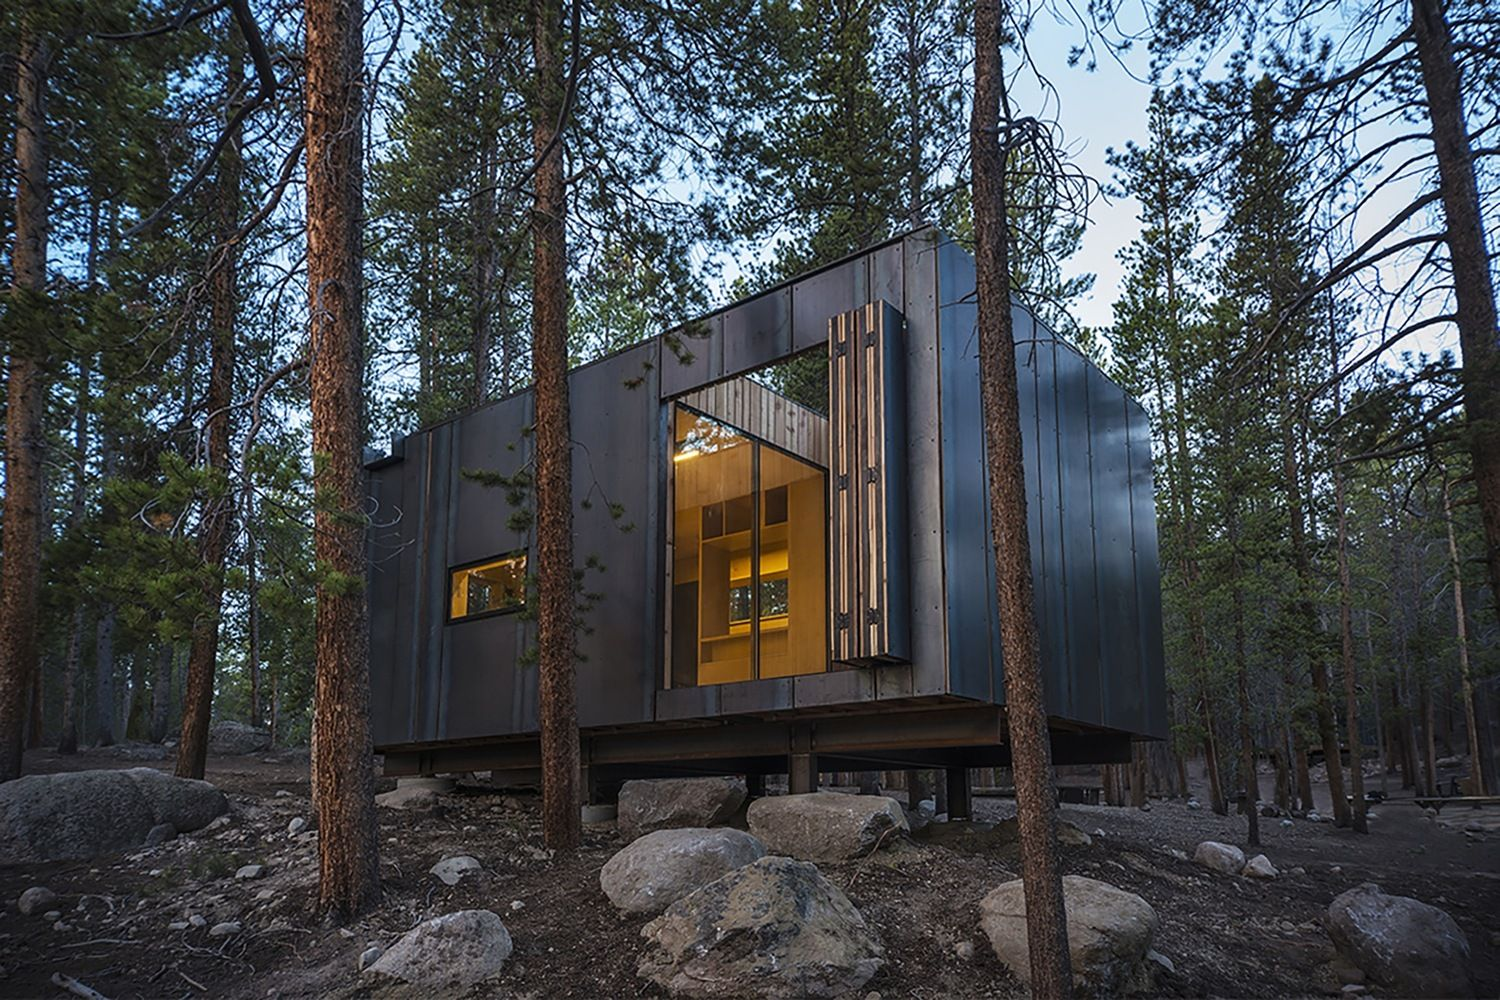 sheets denver colorado building usa cabins steel rolled in housing cobs architecture col students clad workshop micro dezeen of tiny build en outdoors hot